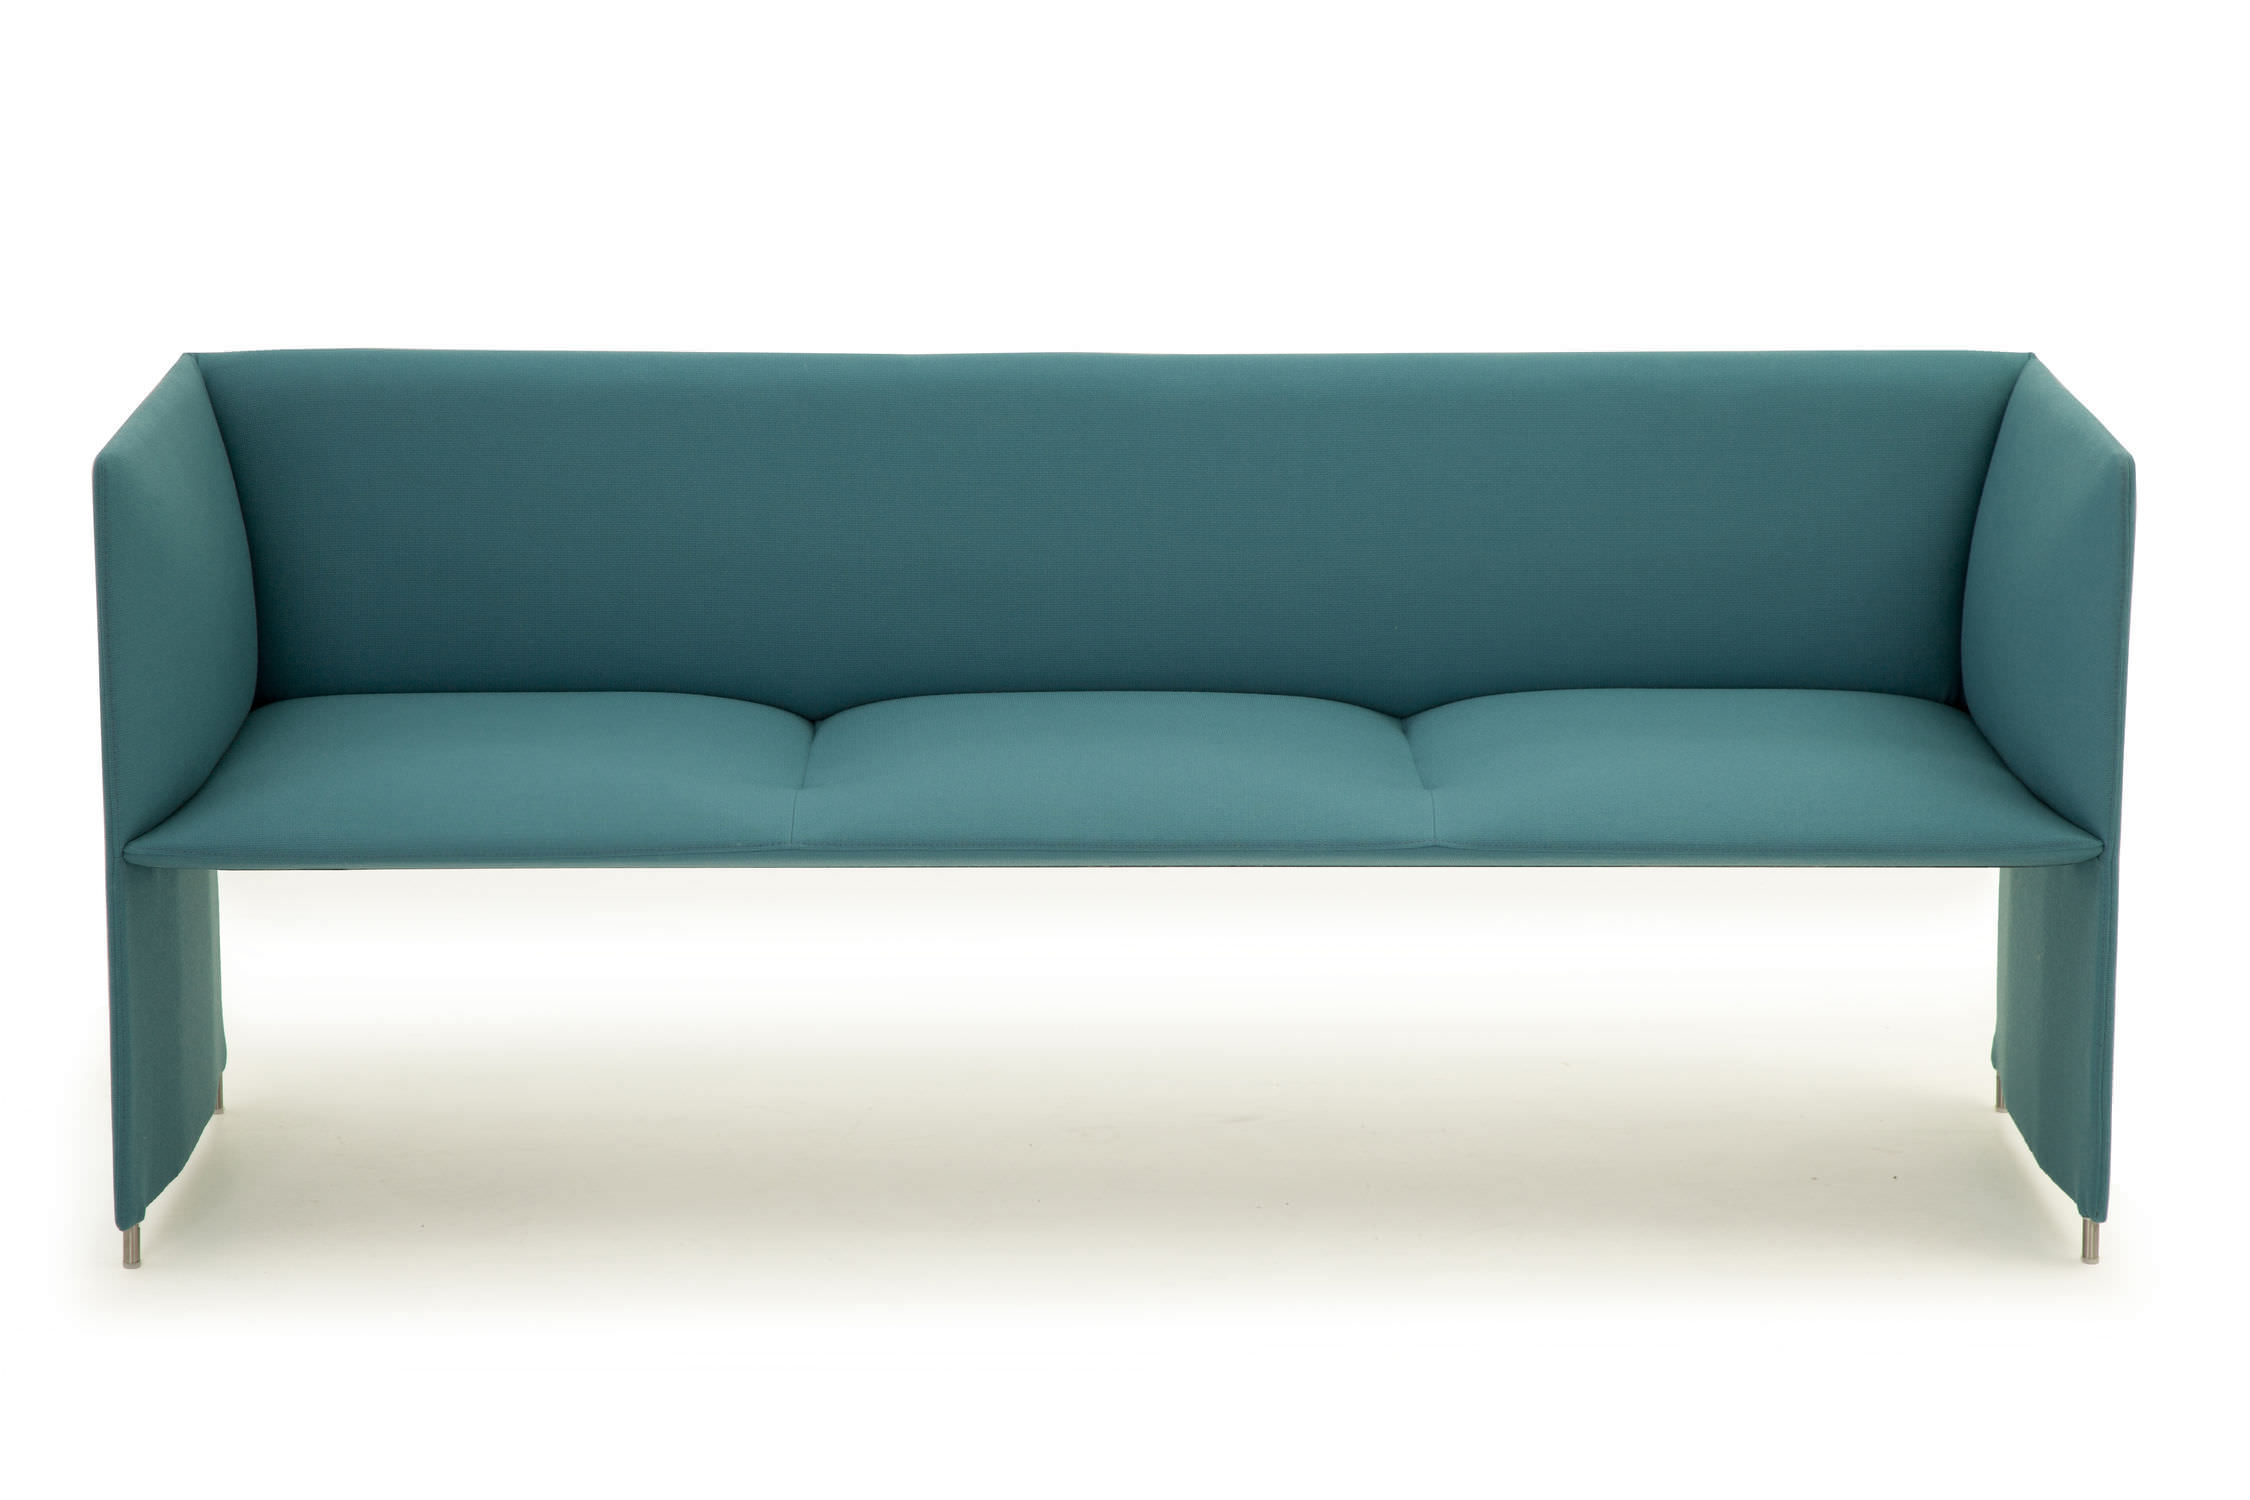 Banquette contemporaine / en tissu / bleue - MONO by Design ...